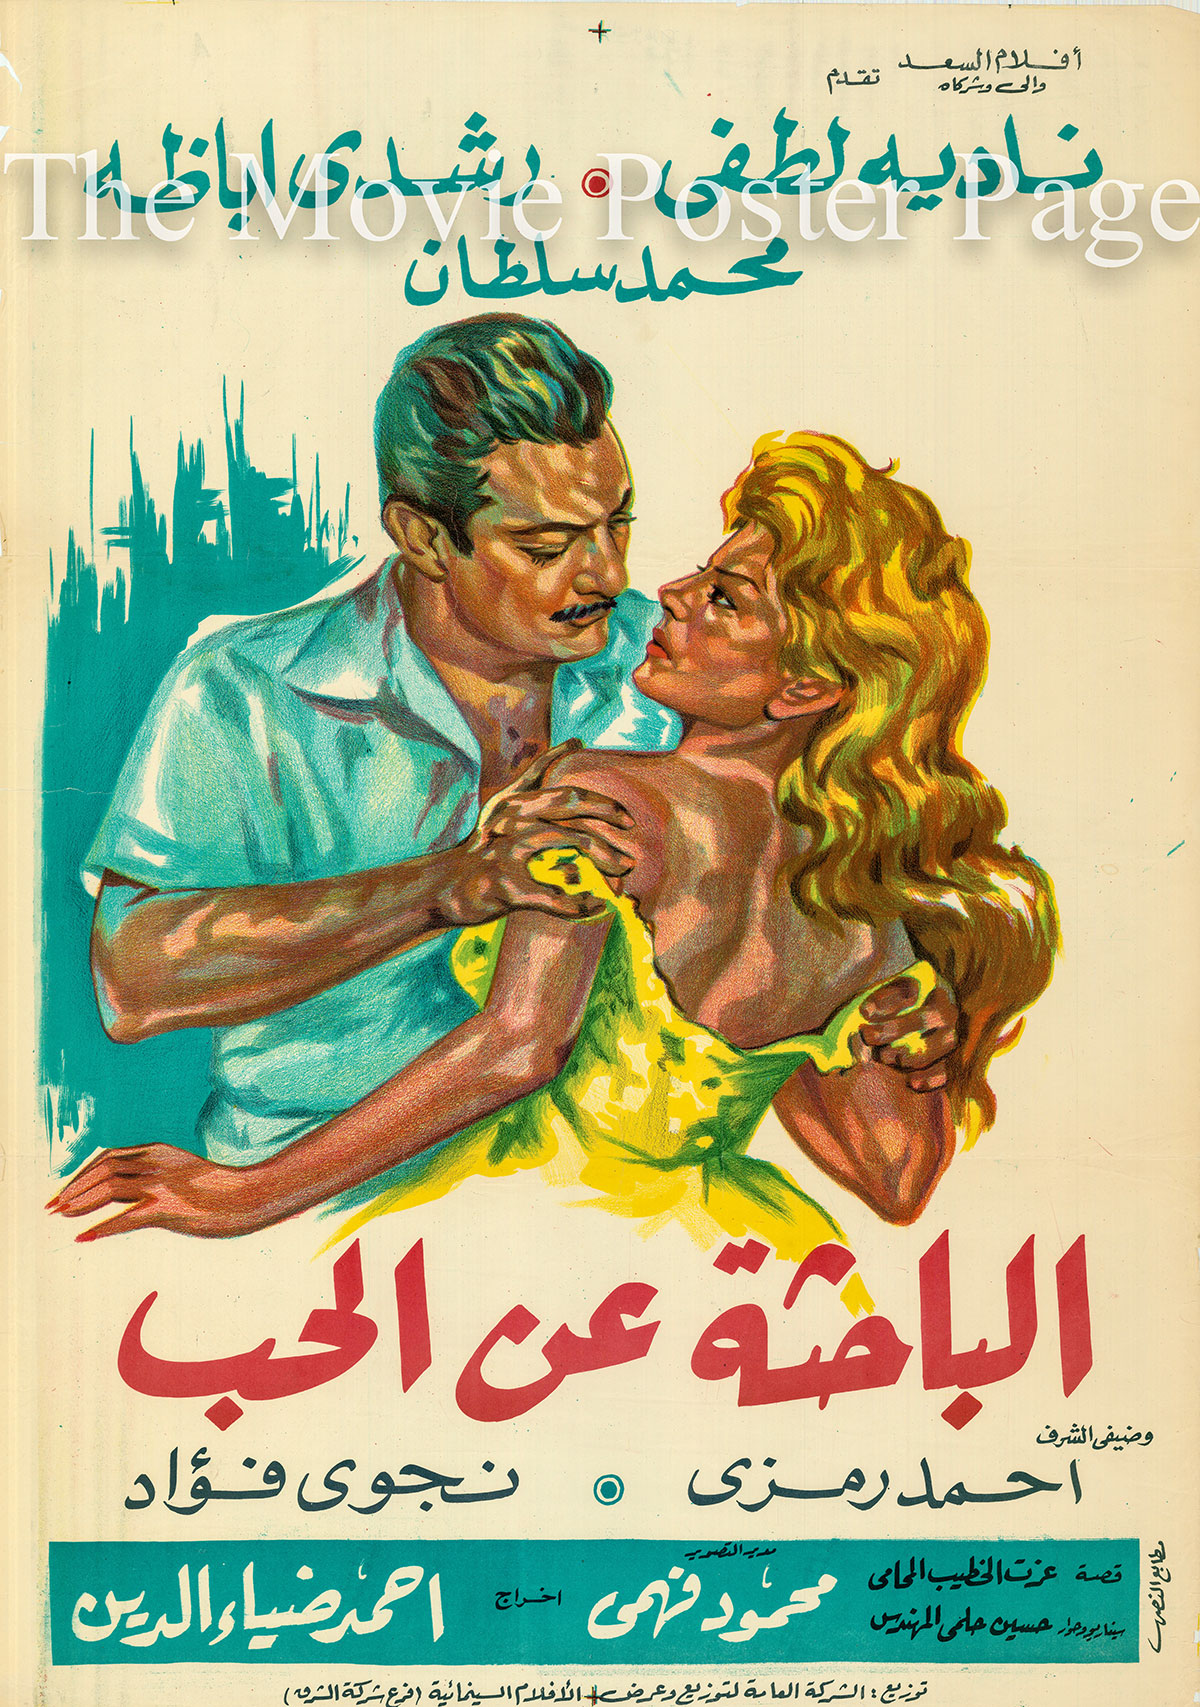 Pictured is an Egyptian promotional poster for the 1965 Ahmed Diaeddin film The Search for Love starring Nadia Lutfi.